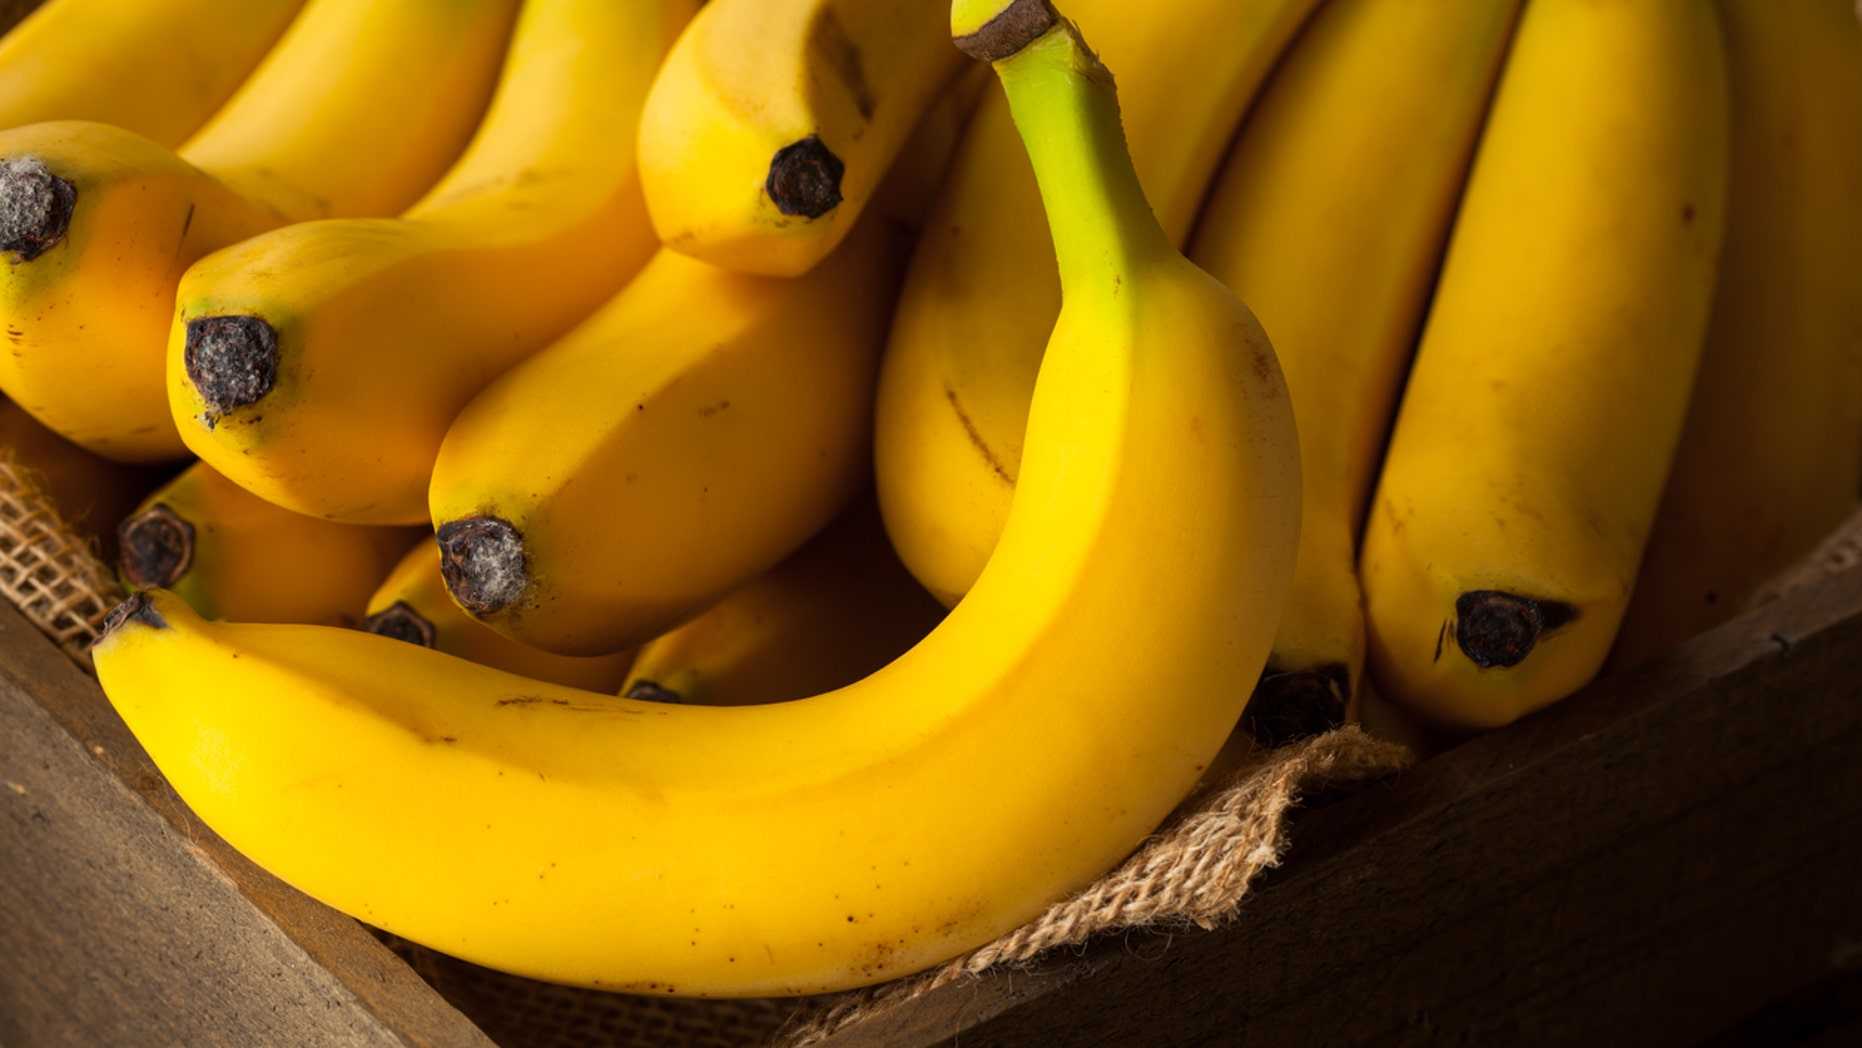 But don't worry, when it comes to eating banana skin, dietitian Susie Burrell does not recommend you just start munching on the peel once you've finished the inside.